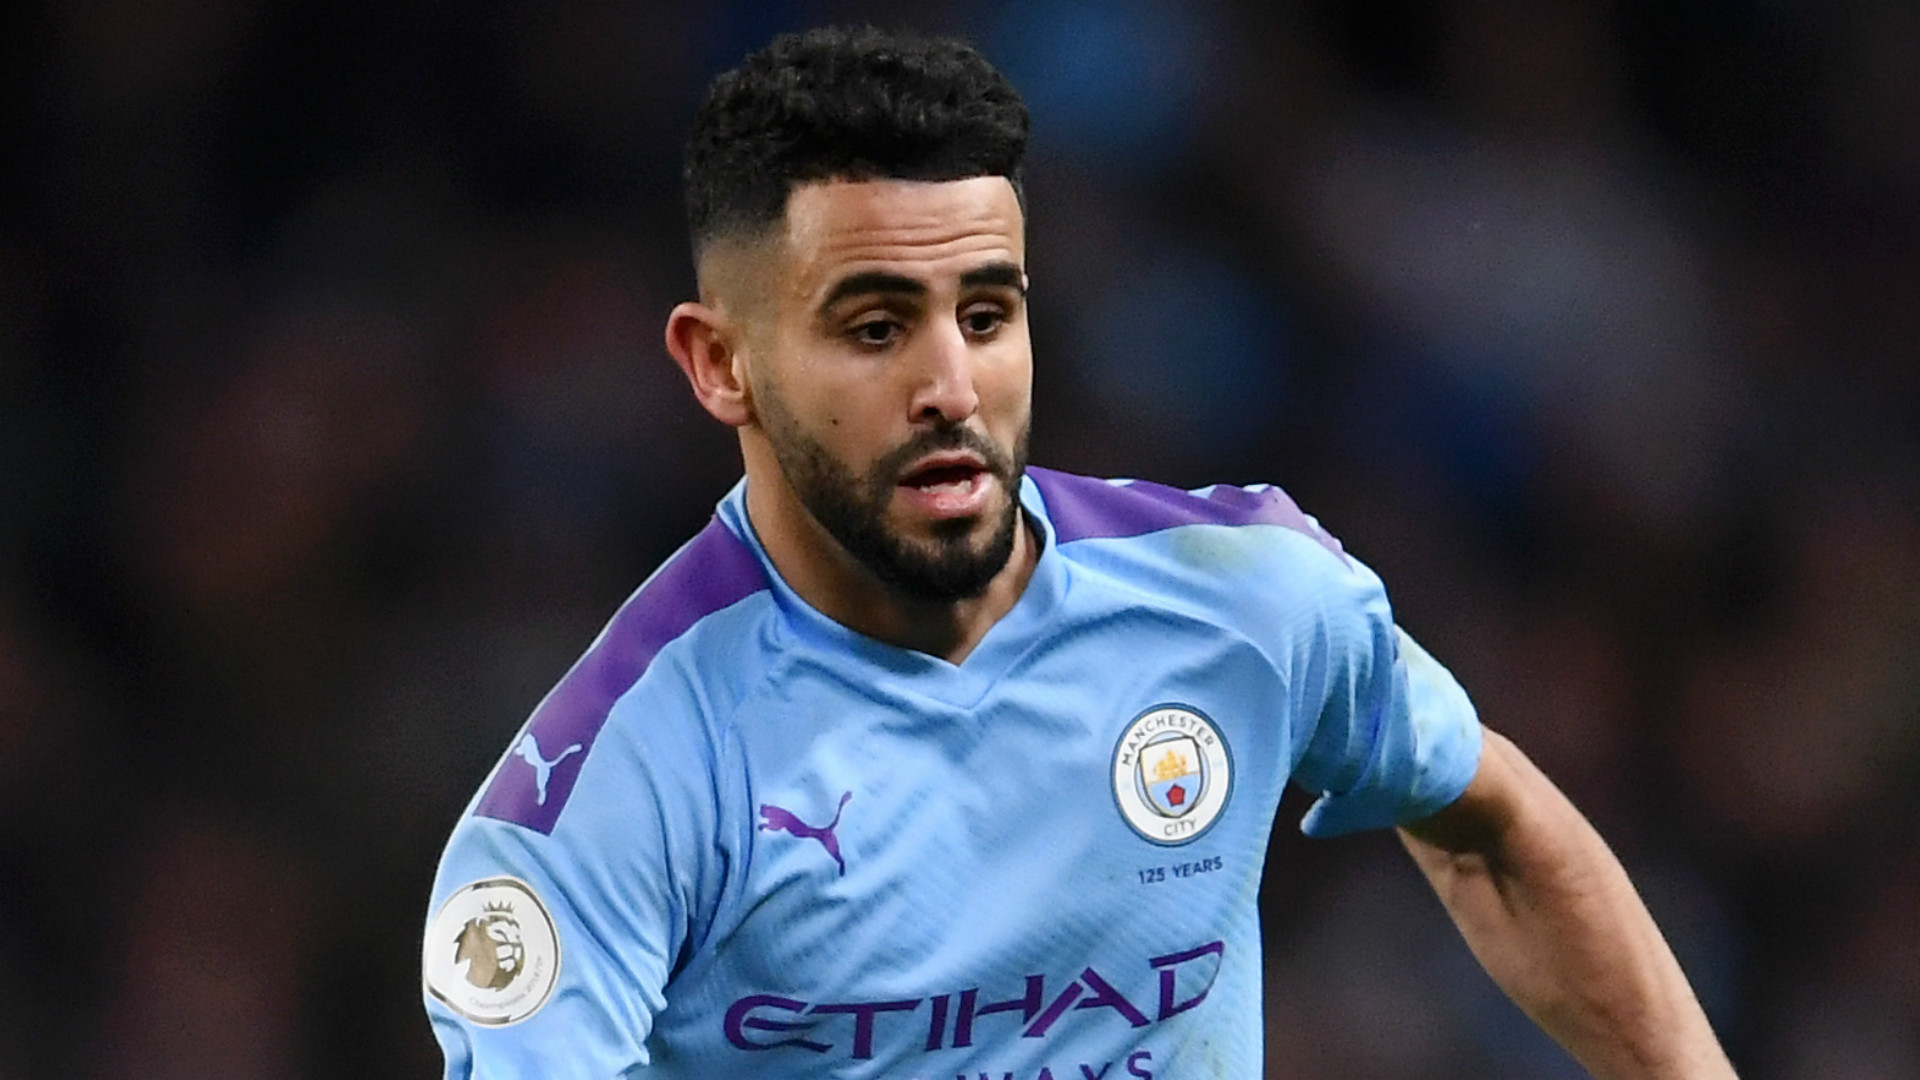 Coronavirus: Manchester City star Mahrez sends warning message